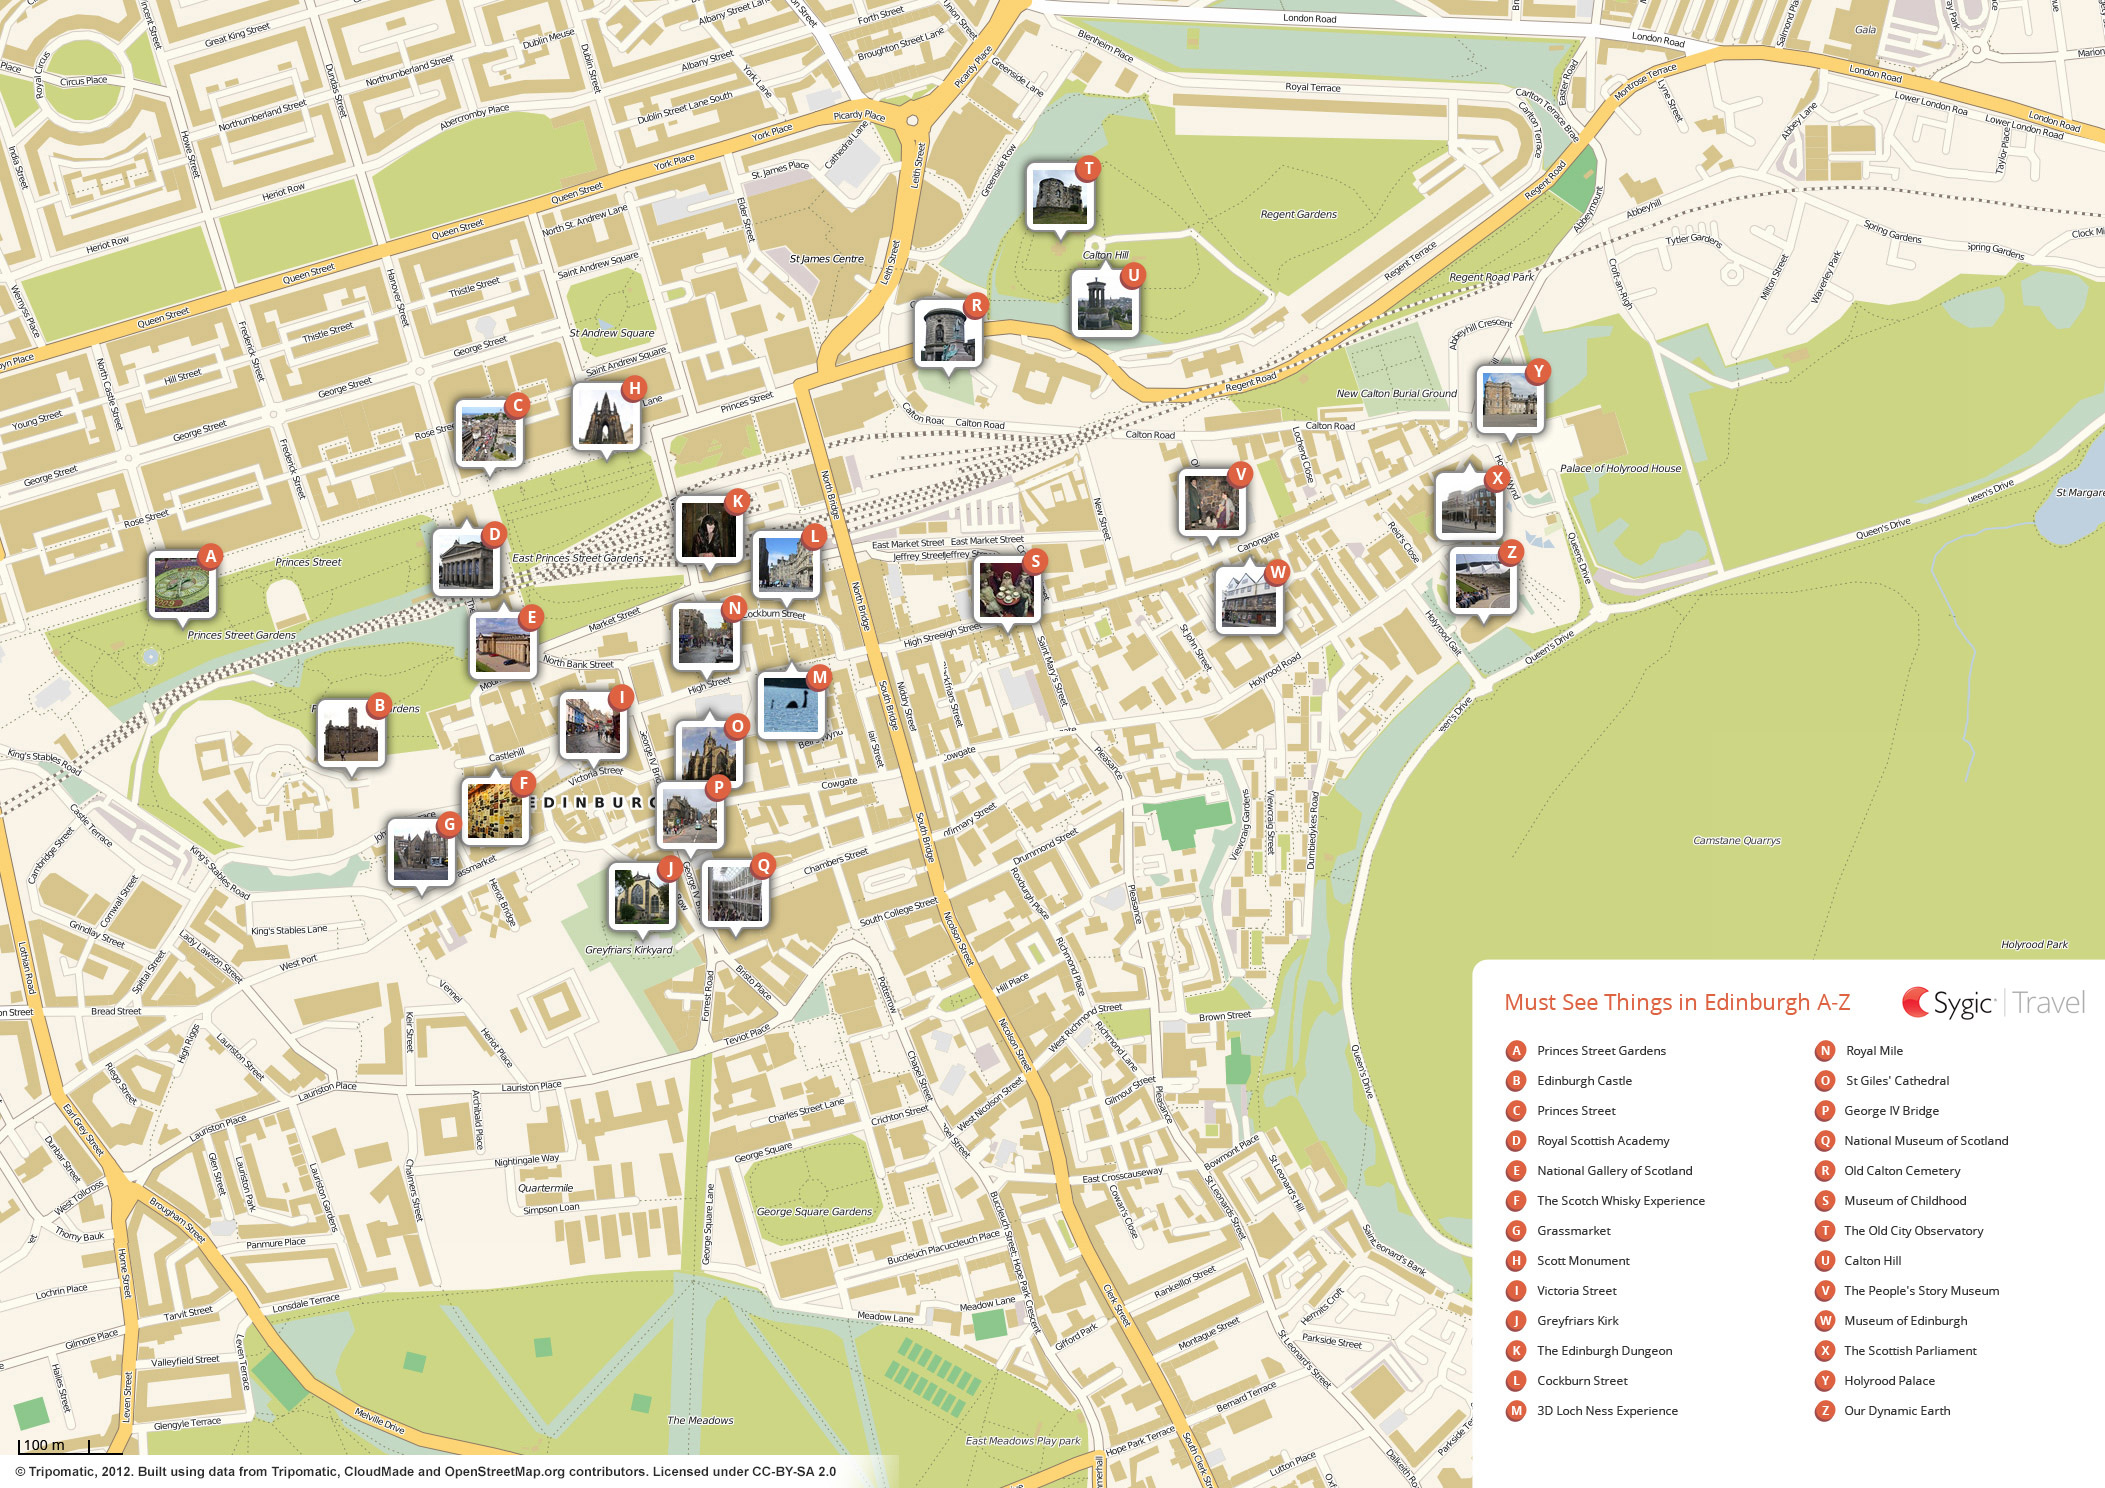 Edinburgh Printable Tourist Map – Map Of Rome Tourist Attractions